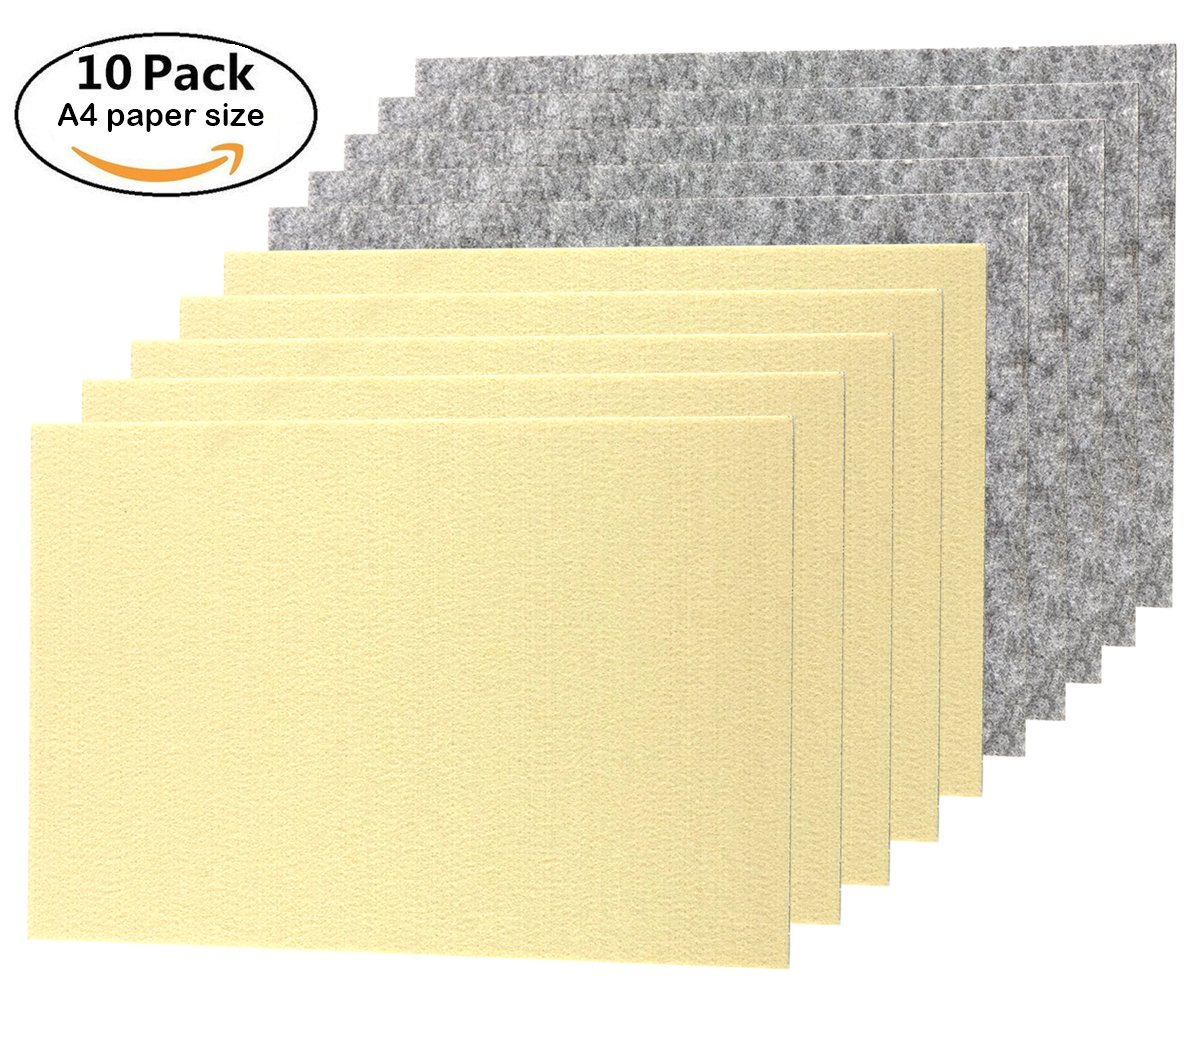 """TOOTACI Premium Furniture Felt Pads Set Self Adhesive Stick On Floor Protection,10 Pack Thick 1/5"""" Heavy Duty Felt Sheets 8 1/4"""" x 11 4/5""""! DIY Furniture Pads Protect Your Hardwood Flooring!"""